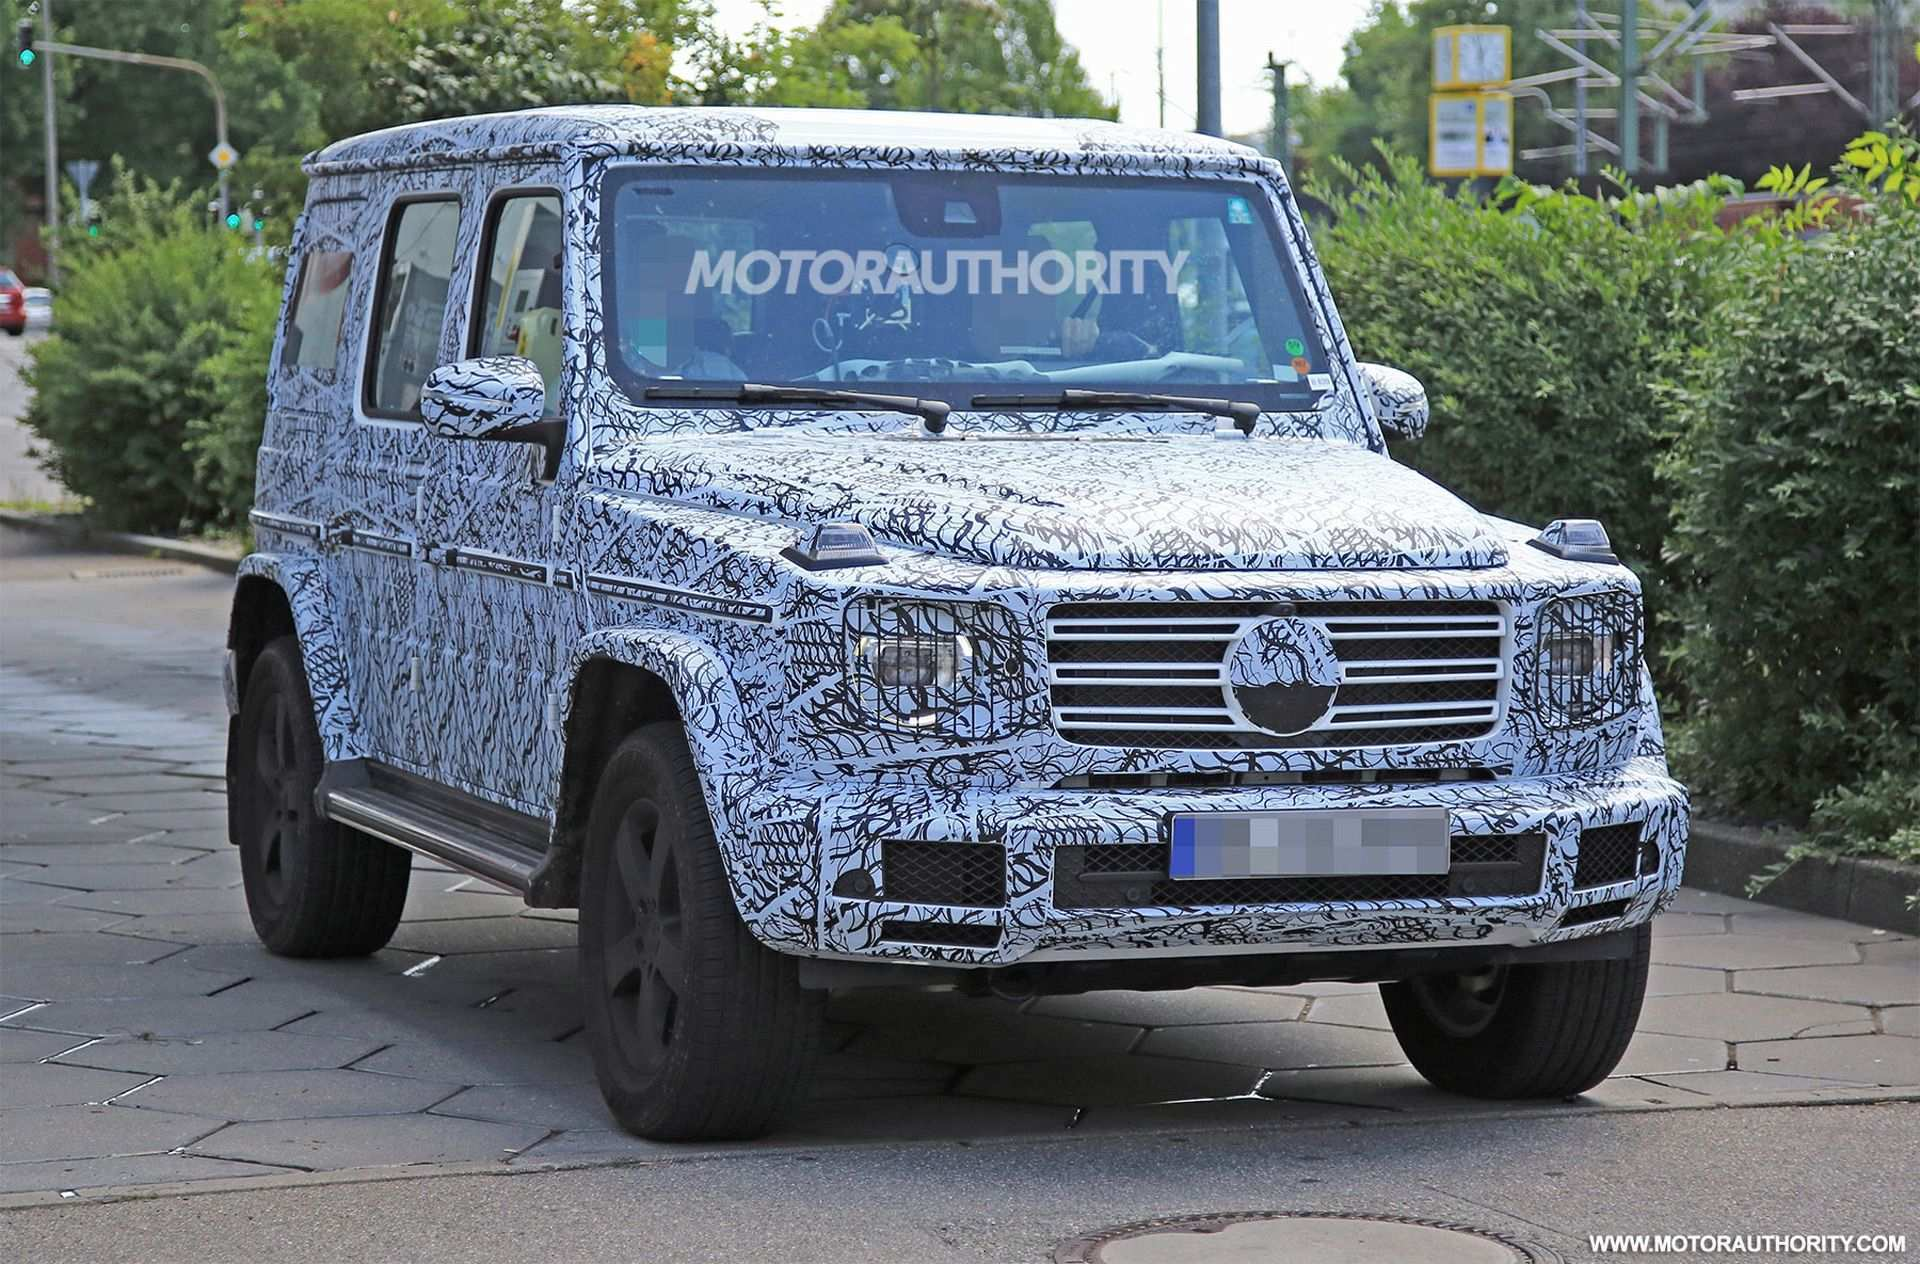 16 New Mercedes G 2020 Exterior Style for Mercedes G 2020 Exterior